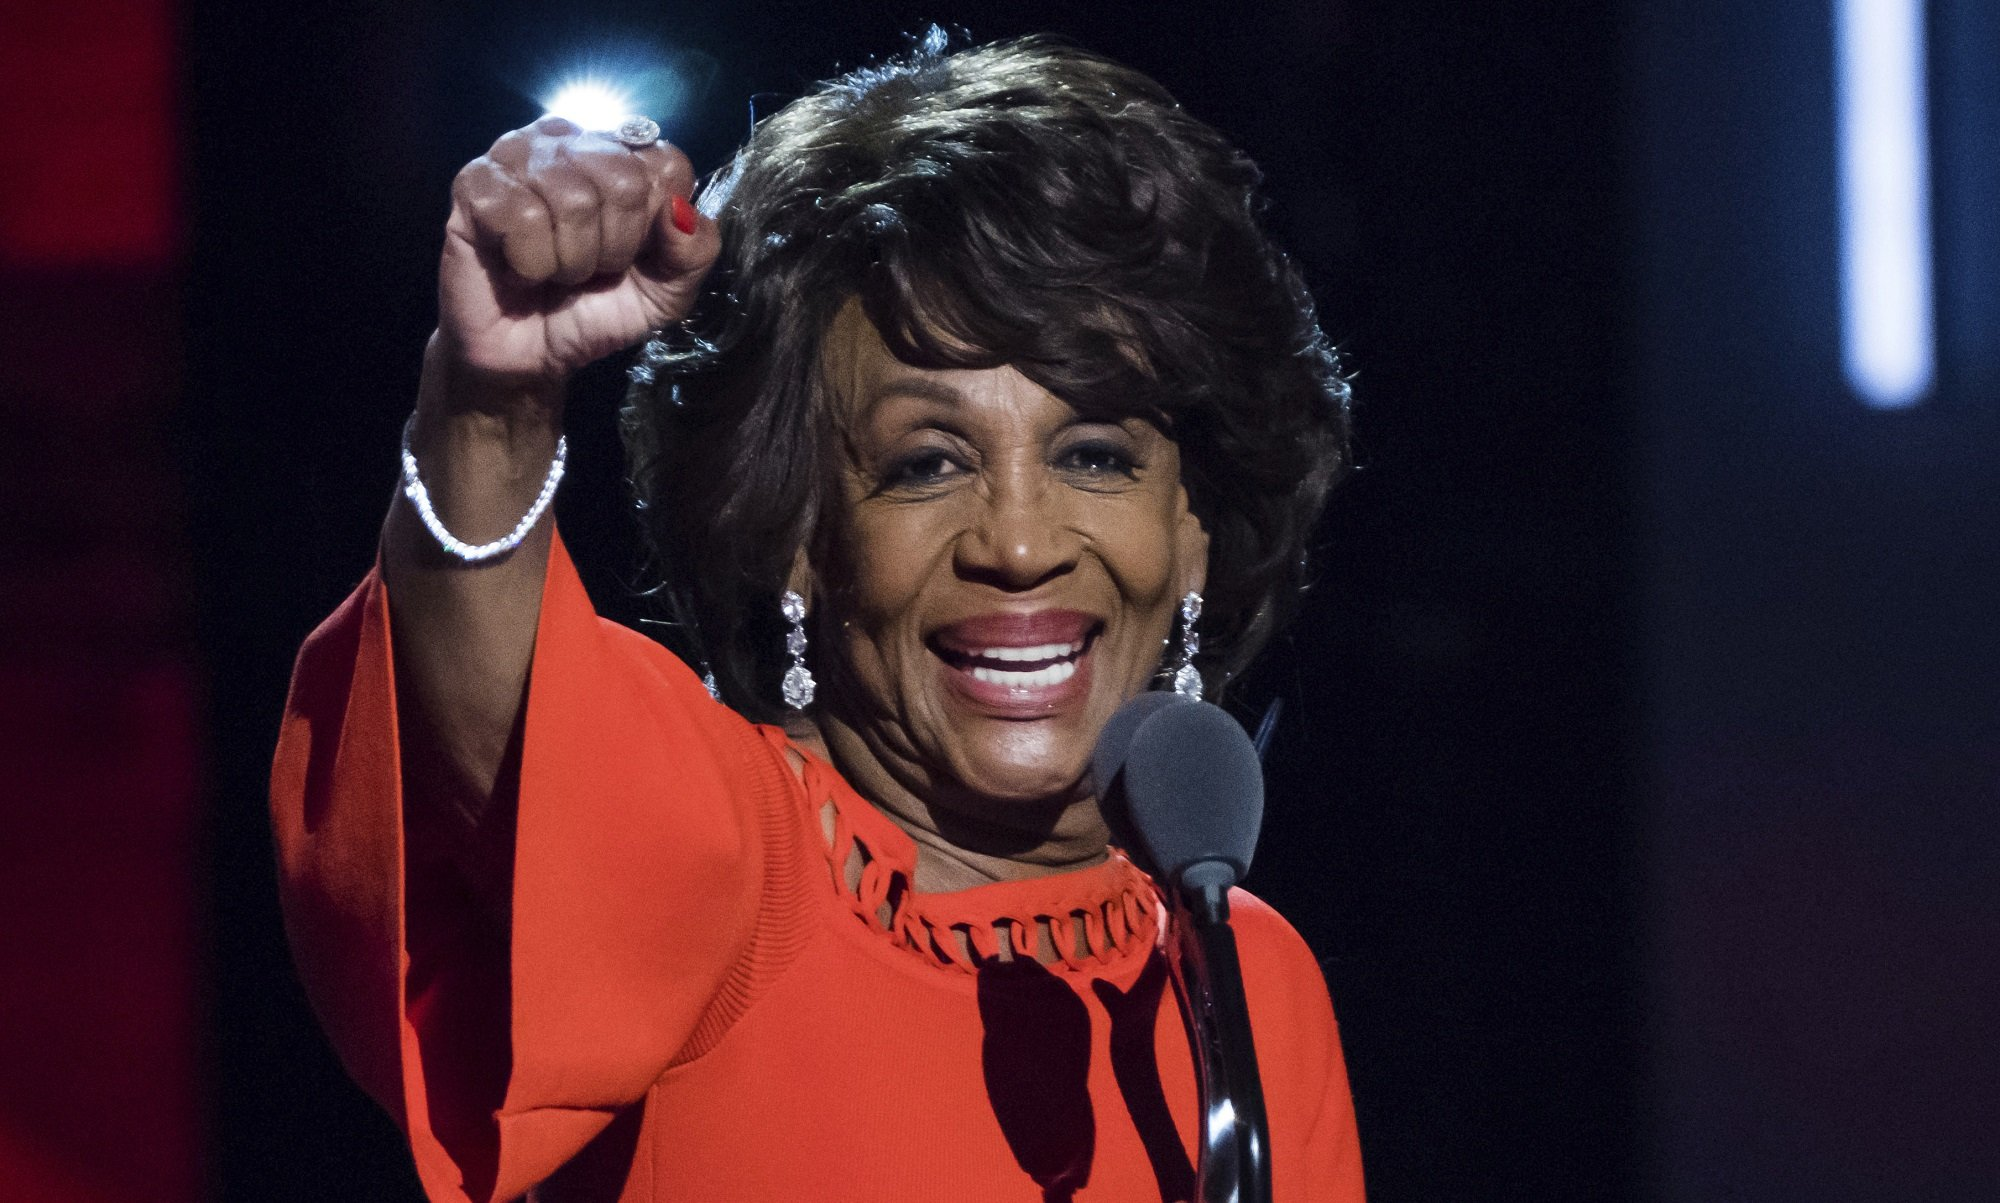 Maxine Impeach 45 Waters Receives National Unity Award